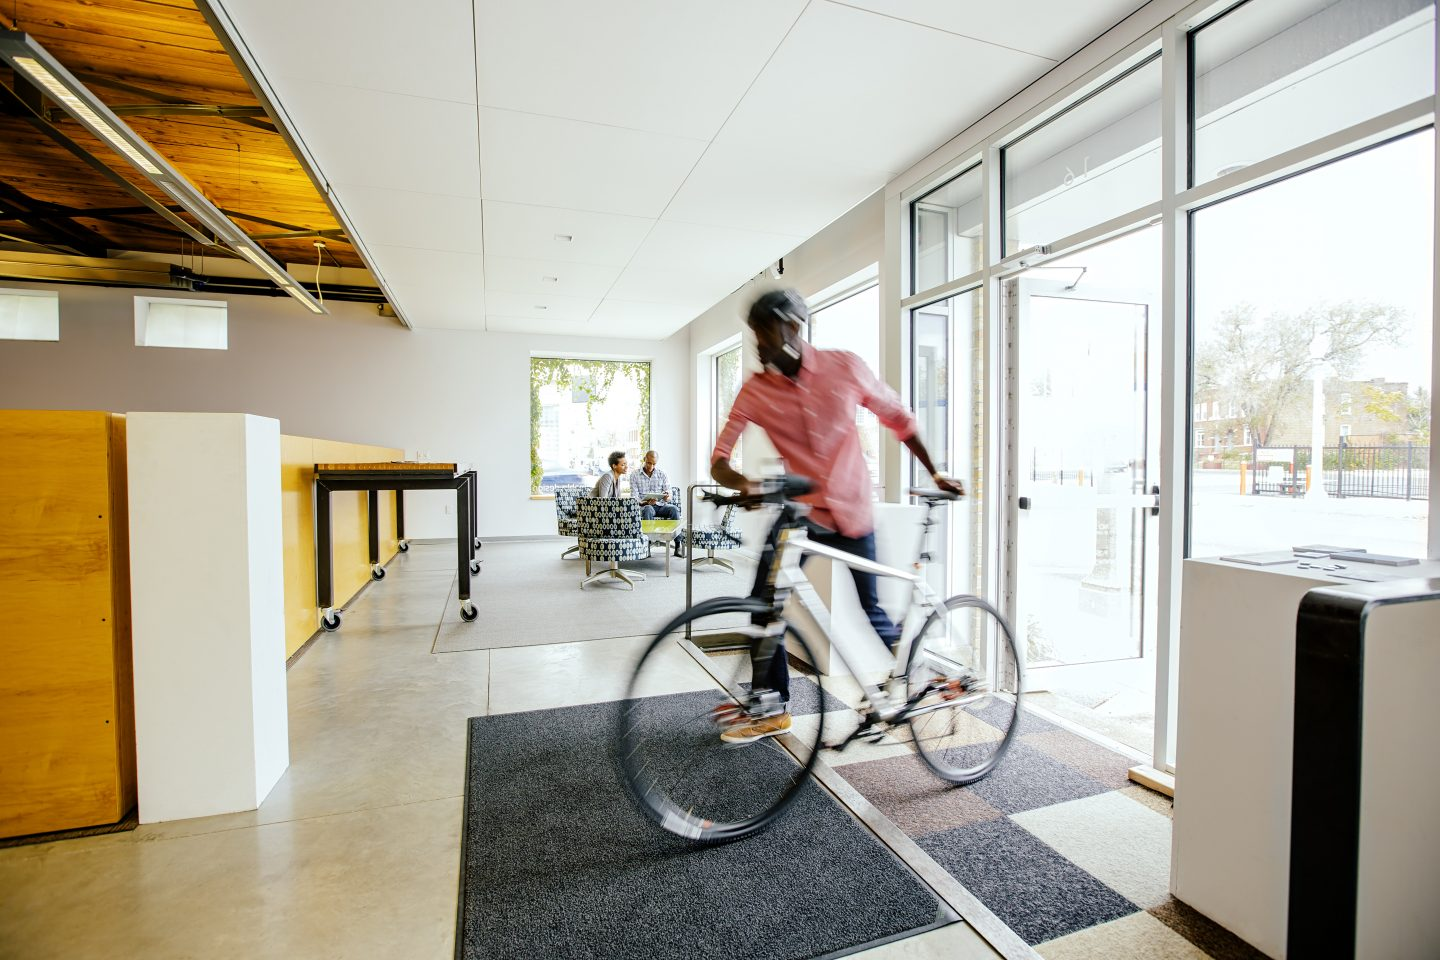 Blurred view of businessman pushing bicycle into office. office, workplace, rushing, bicycle